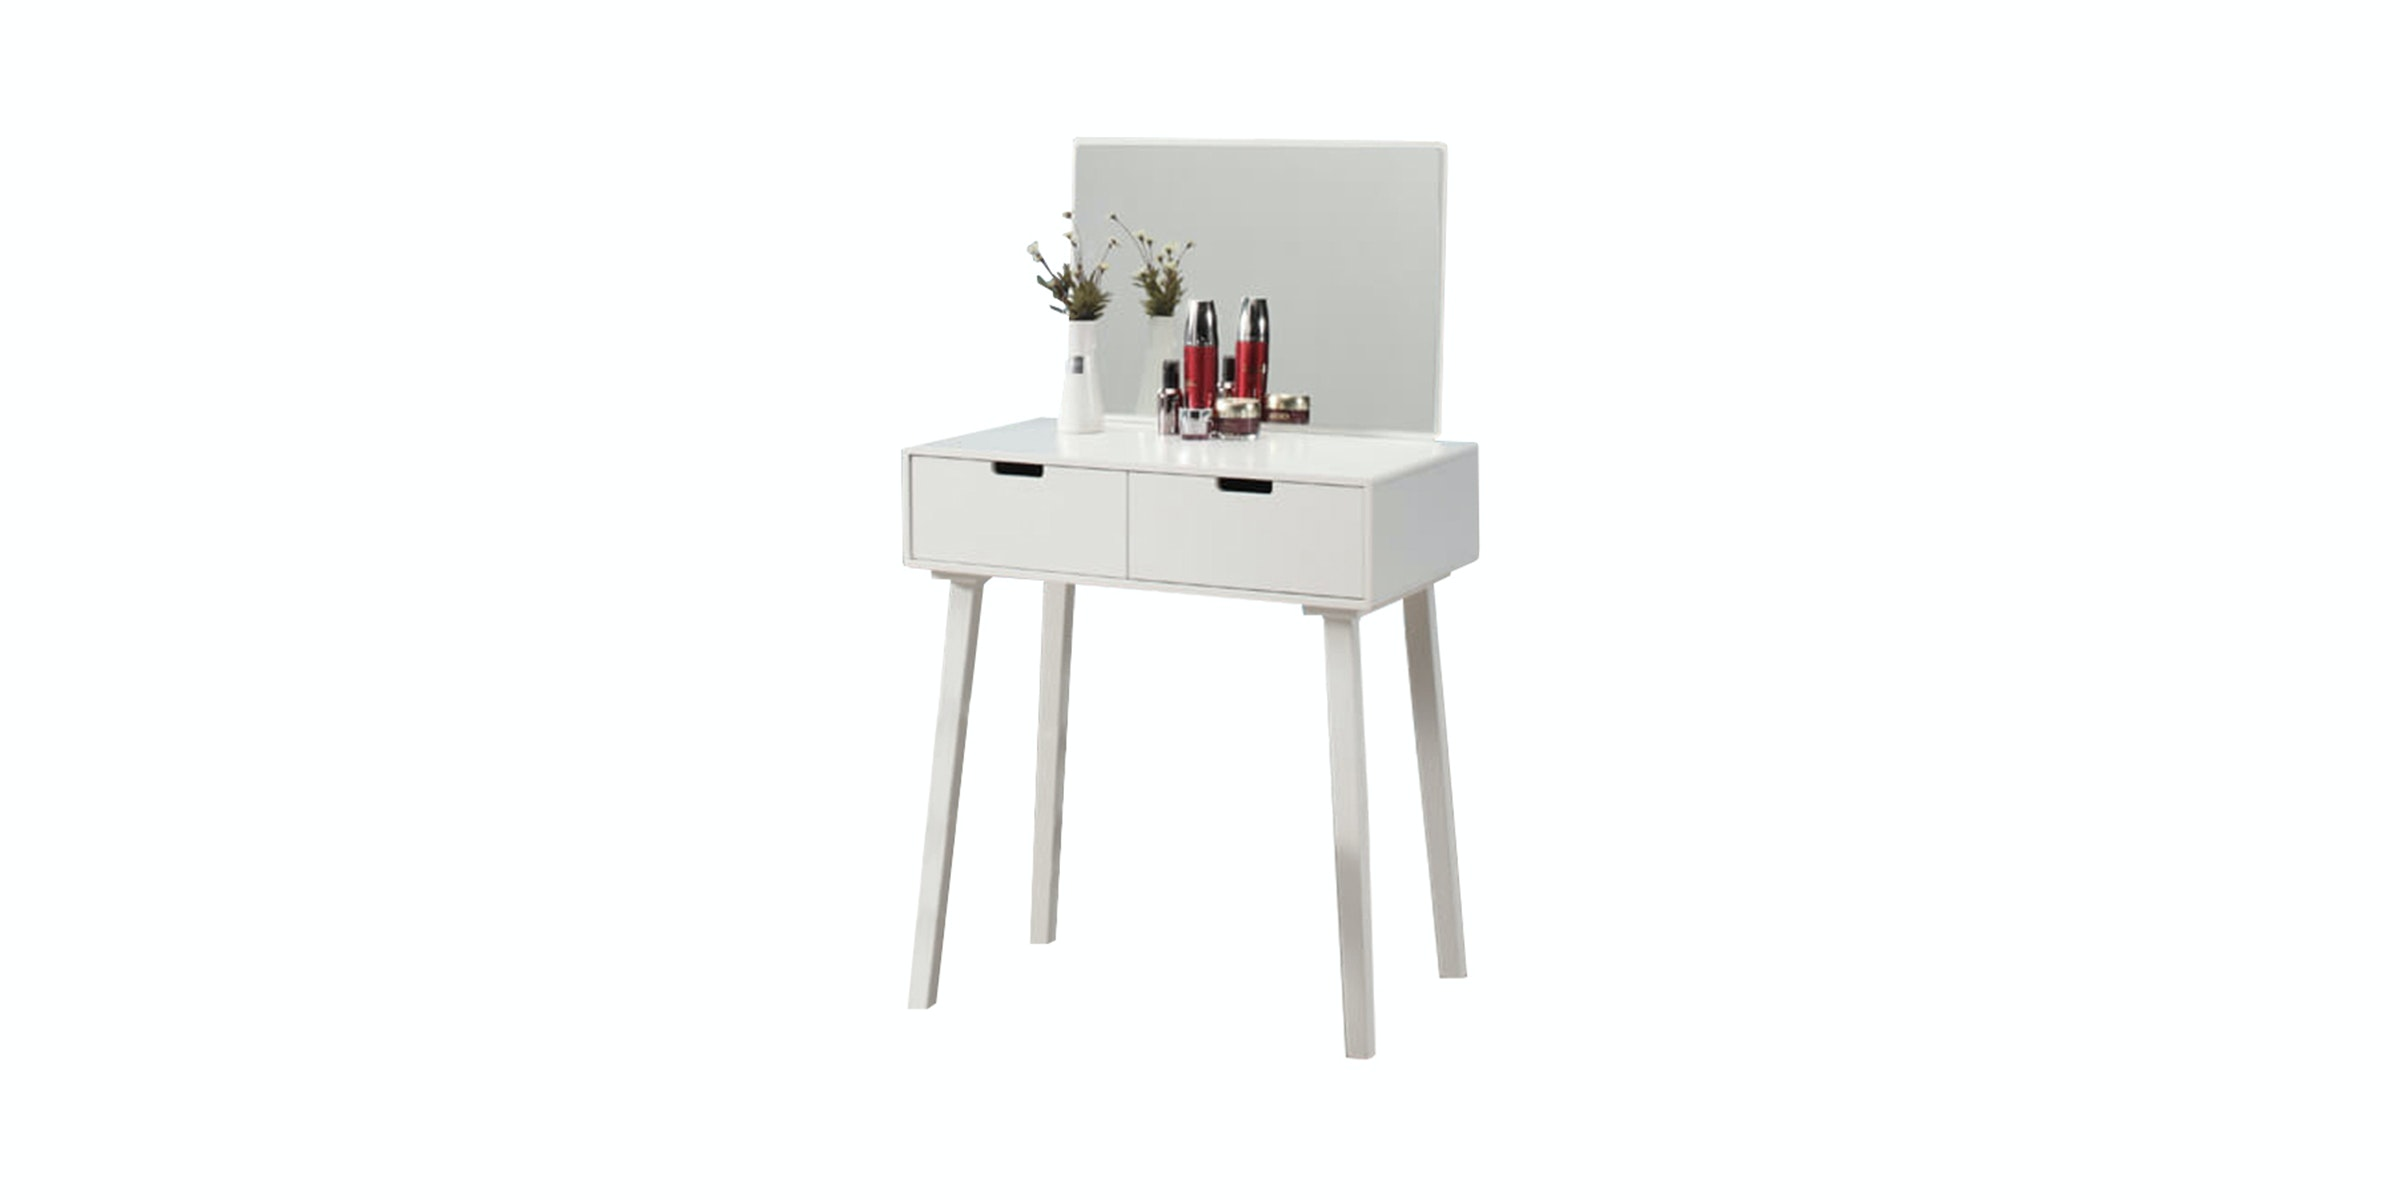 Olive House Meja Rias Hera Console 2 Drawer